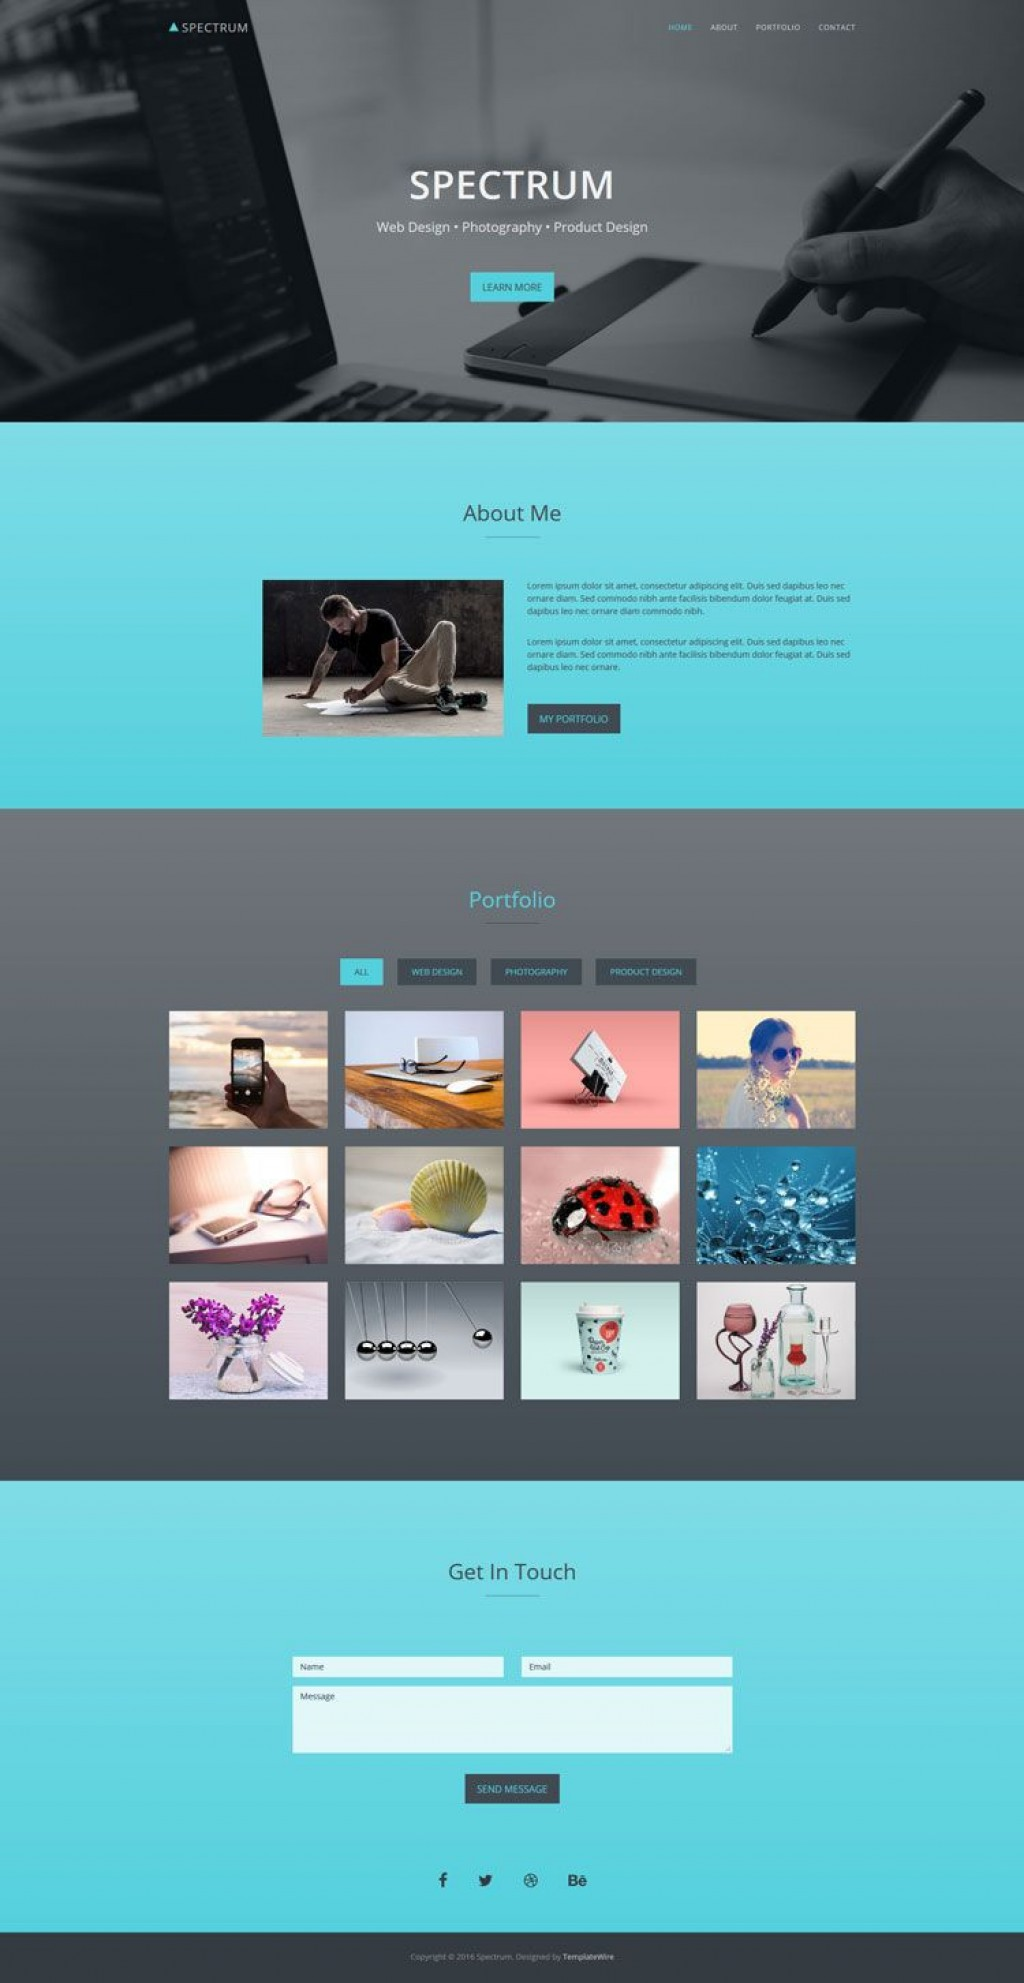 001 Fantastic Free Portfolio Website Template Highest Quality  Templates For Web Developer Photography Html5Large